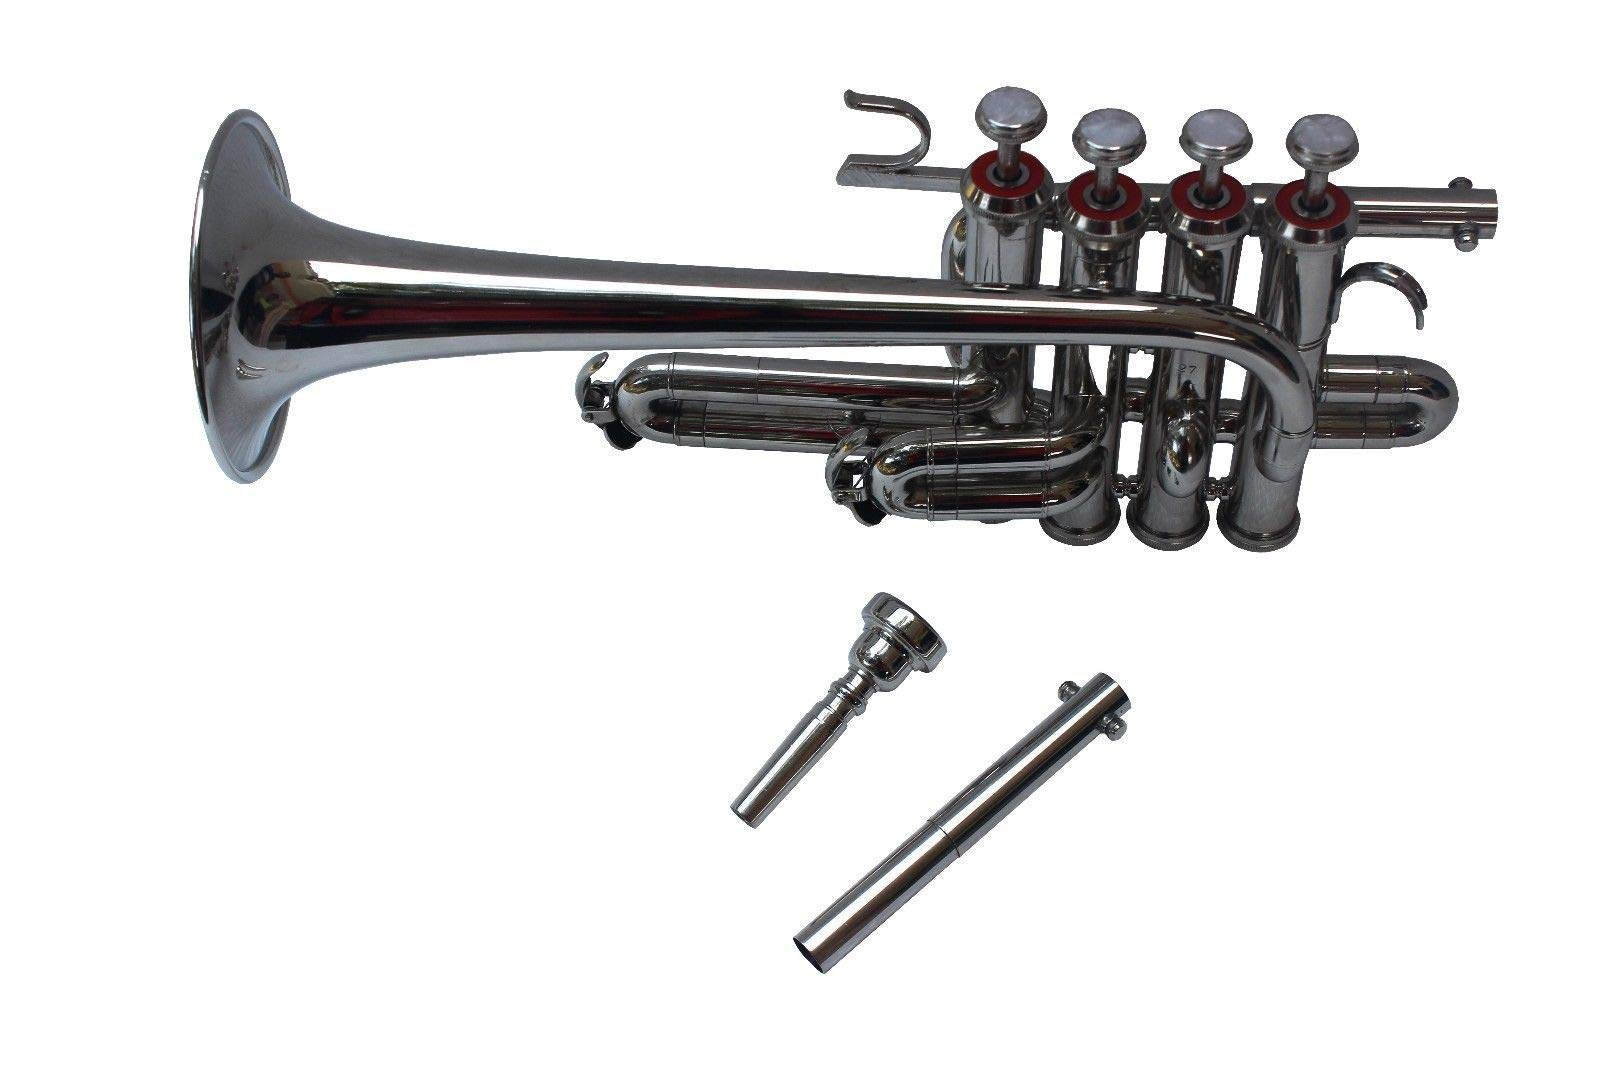 SCEXPORTS Picollo Trumpet Bb Pitch With Free Hard Case And Mouthpiece, Nickel Silver PRO120